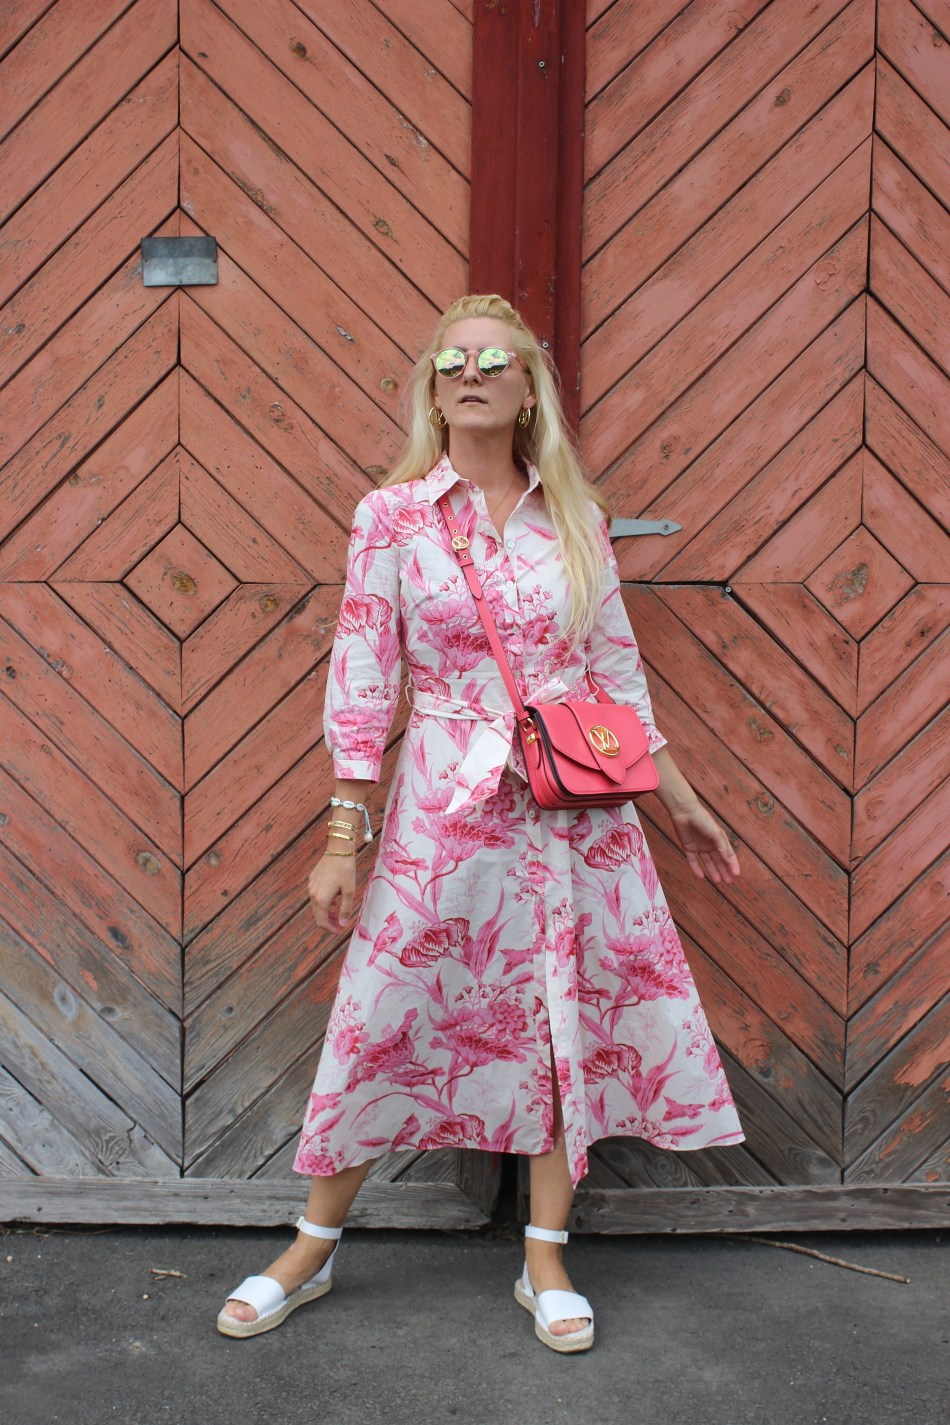 Living Coral- Pantone Farbe 2019-Trendfarbe-Trendblogger-Coral Red-Coralle-Korallrot-carrieslifestyle-Maxikleid Zara-Louis Vuitton Pont9-Tamara Prutsch-Blogger-Bloggerstyle